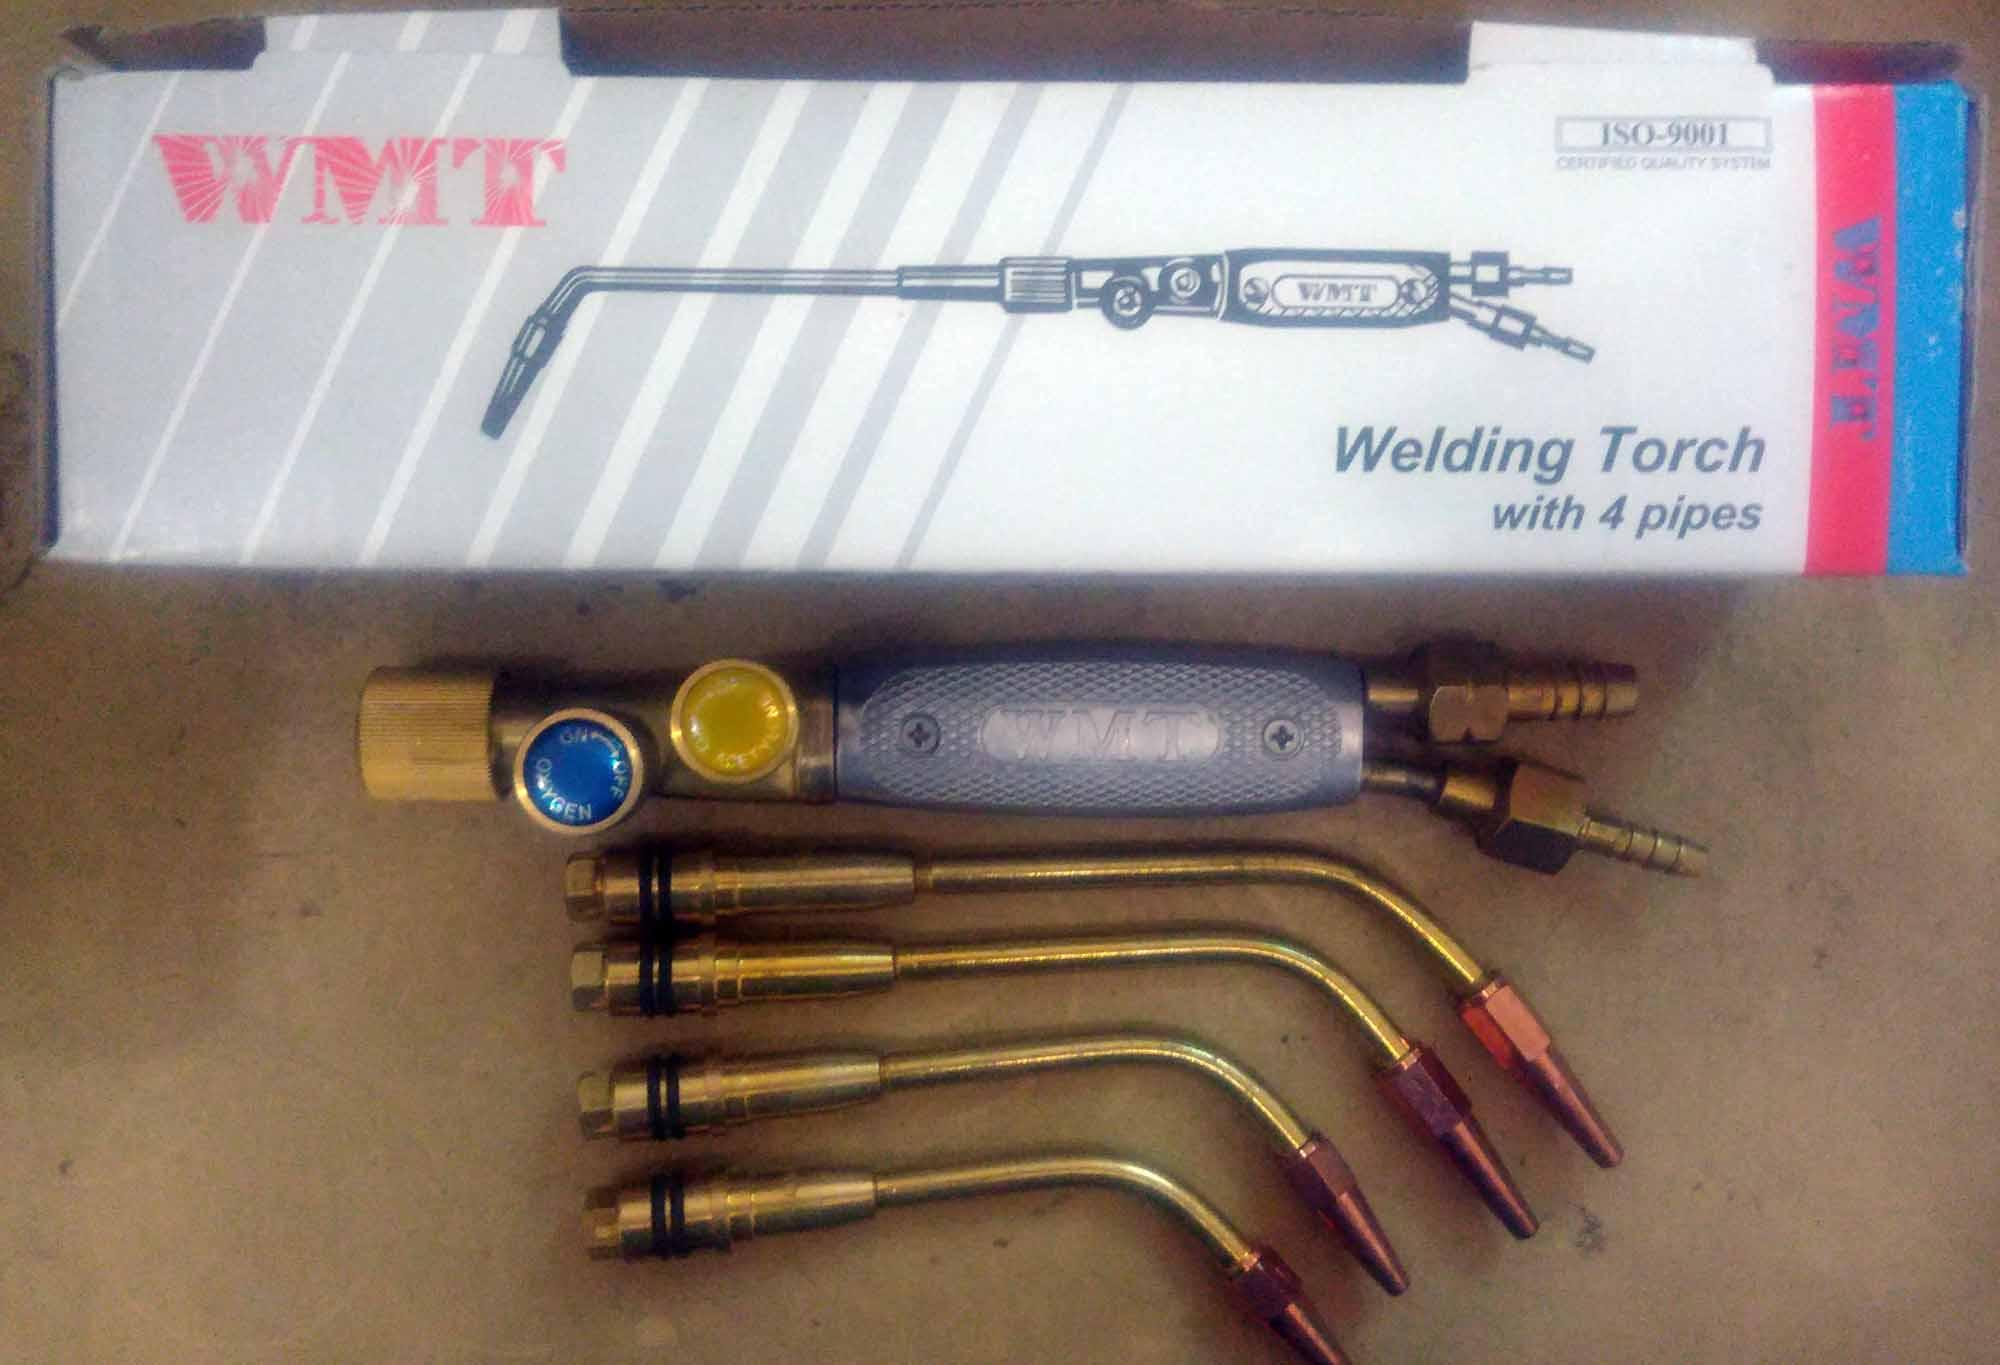 BLENDER LAS WELDING TORCH MODEL GLOOR LAS KARBIT WMT